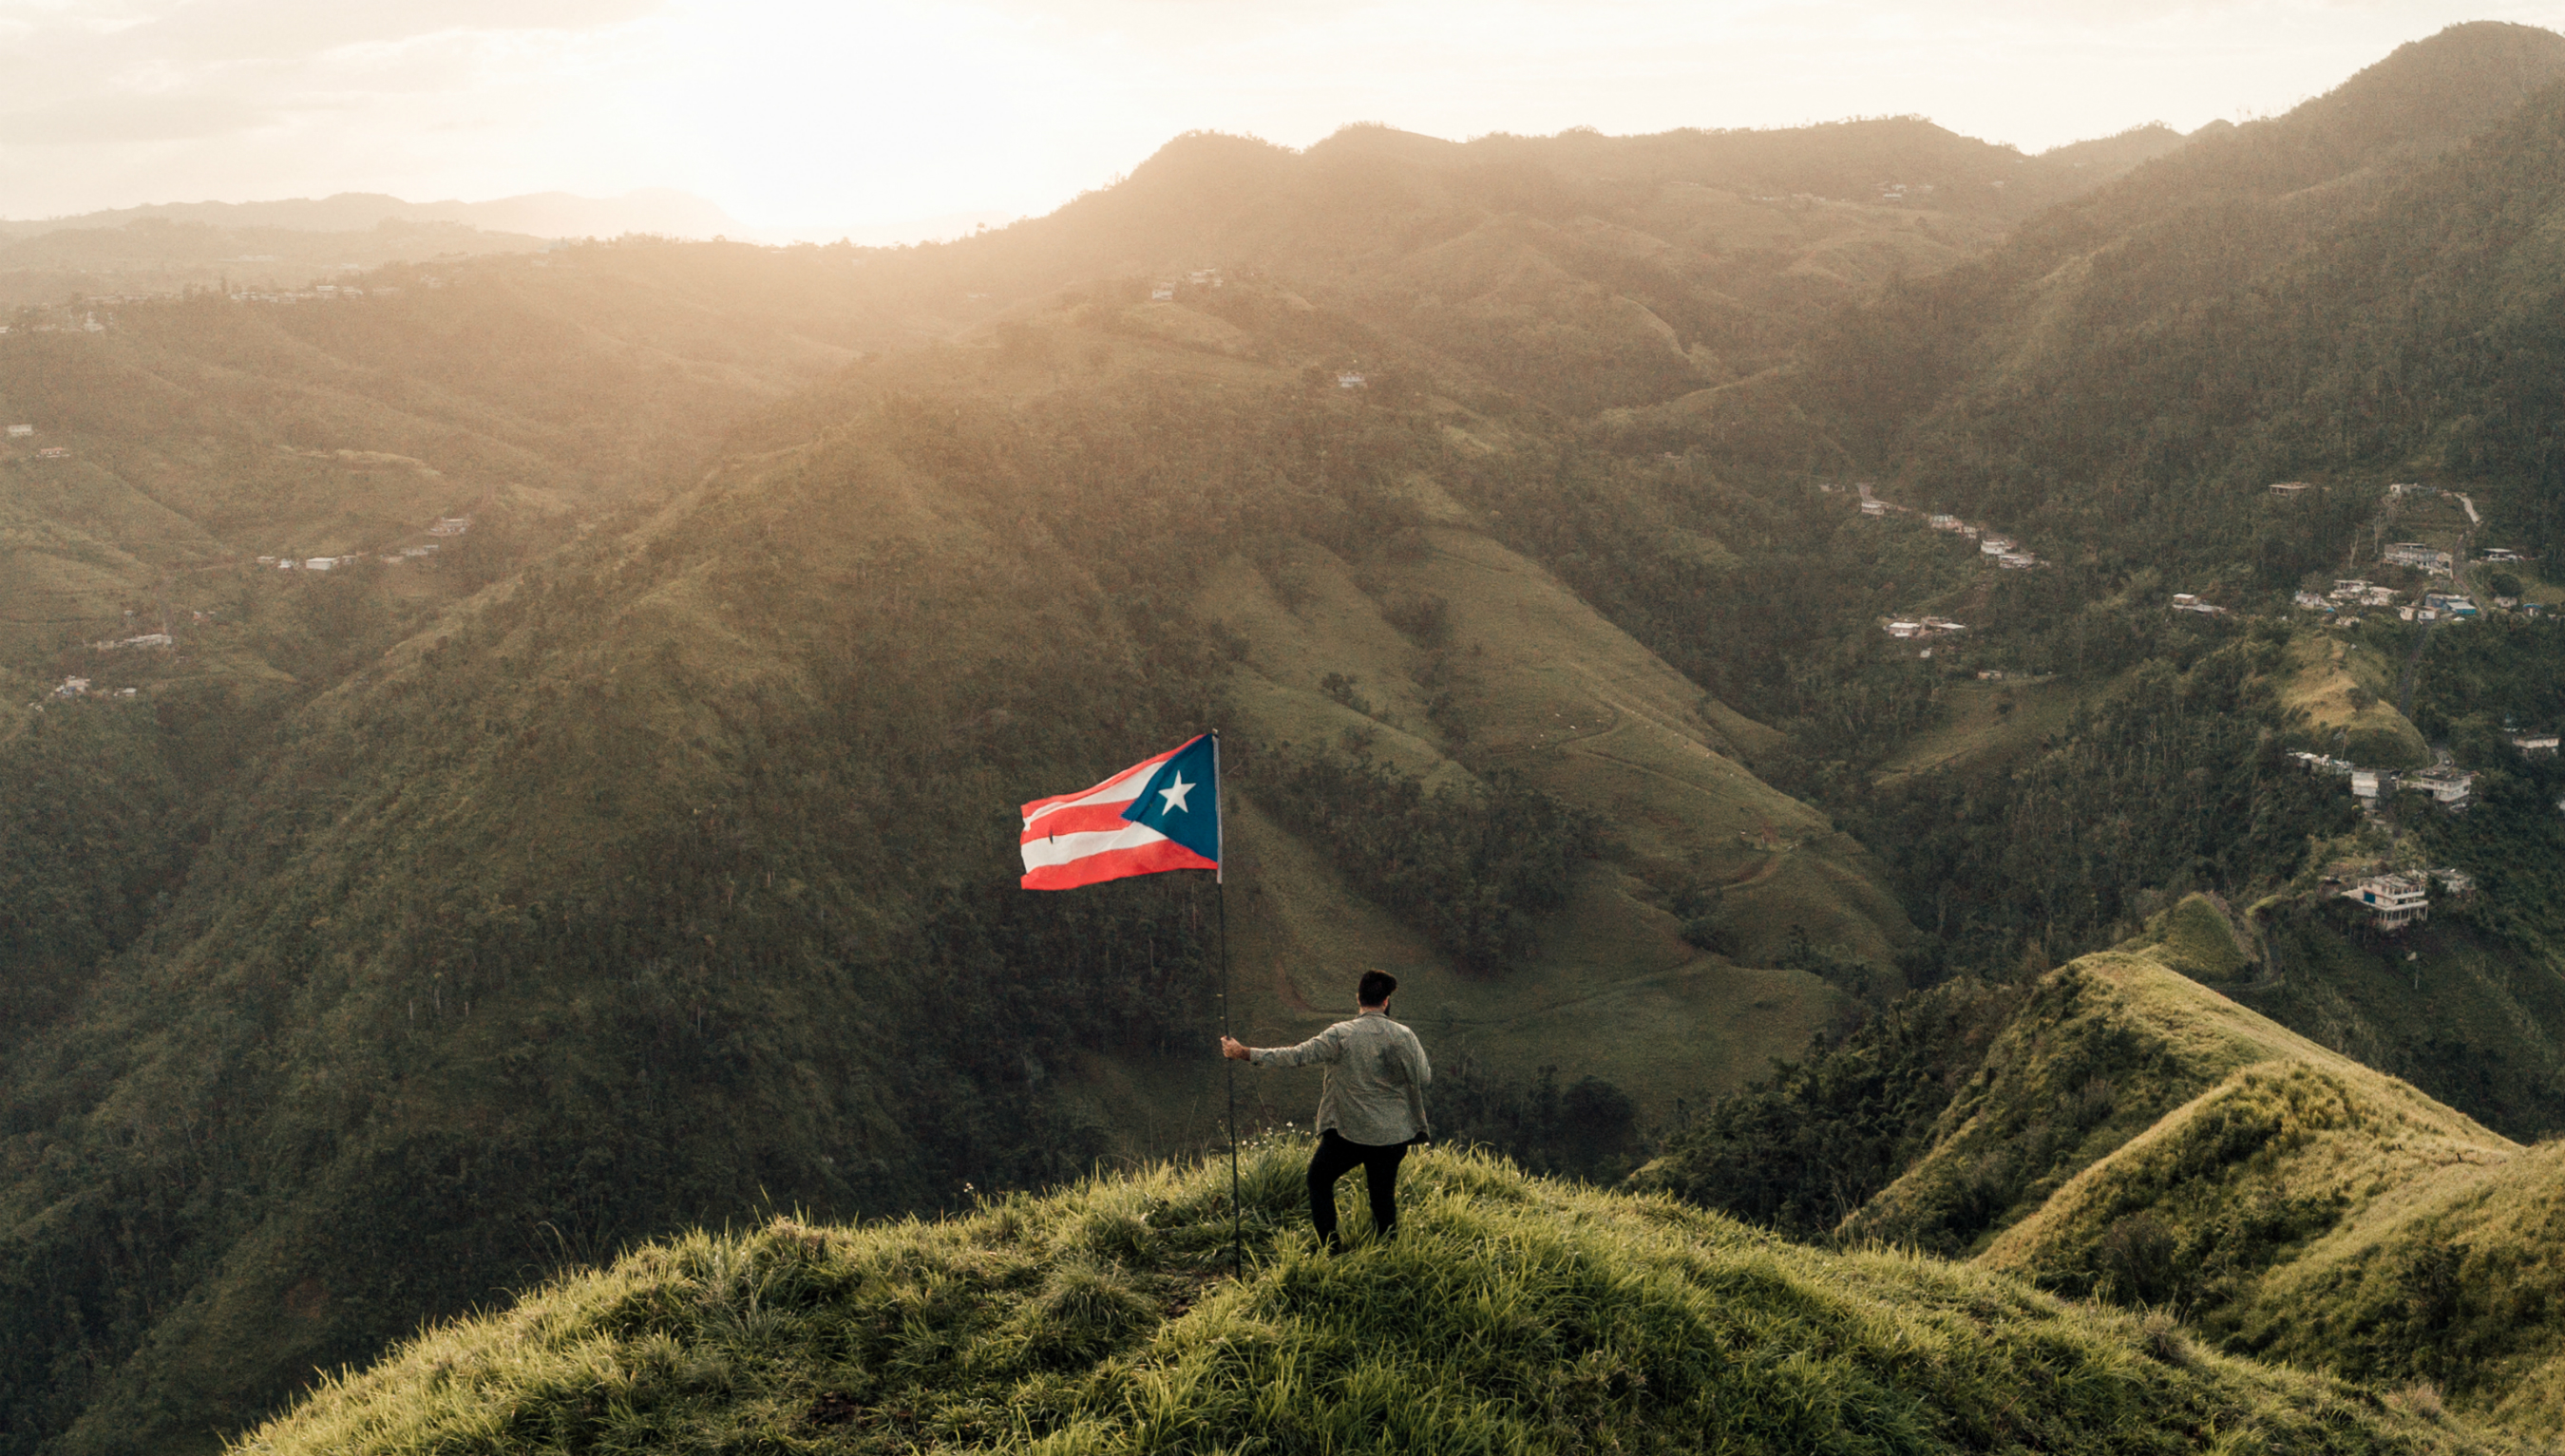 A man stands with a Puerto Rican flag atop a mountain summit as the sun sets.